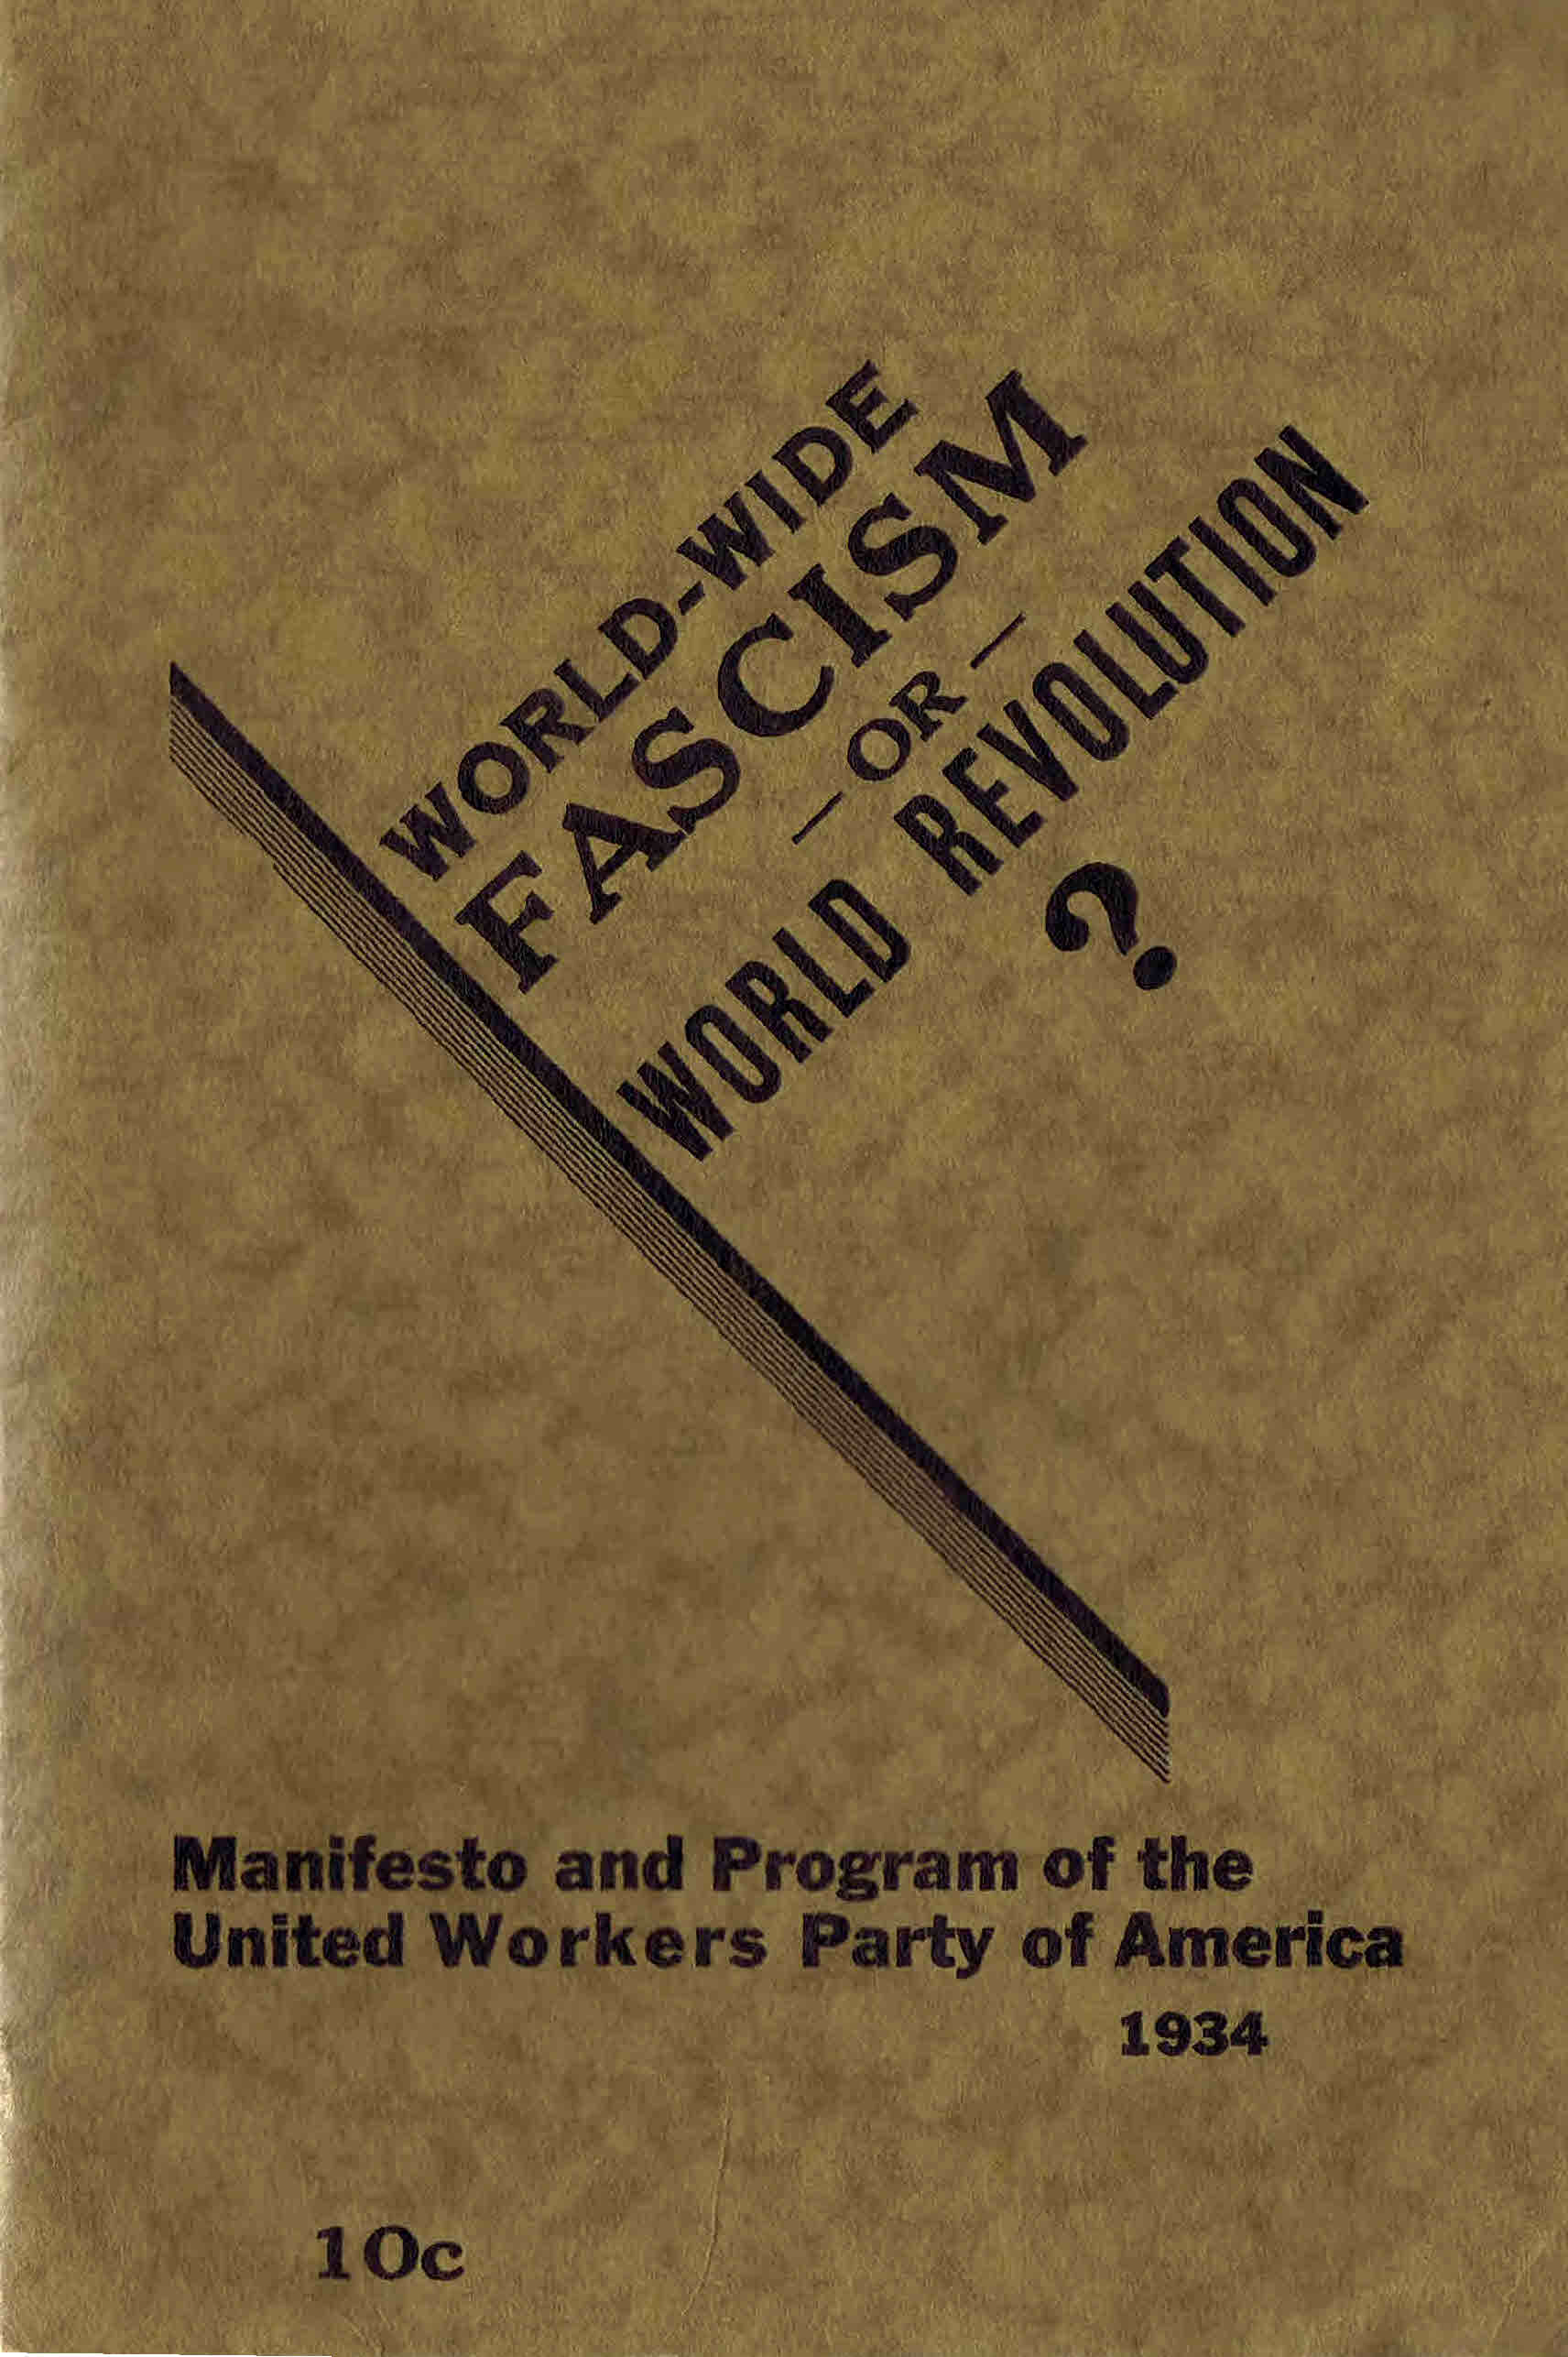 manifesto and program of the united workers party of america